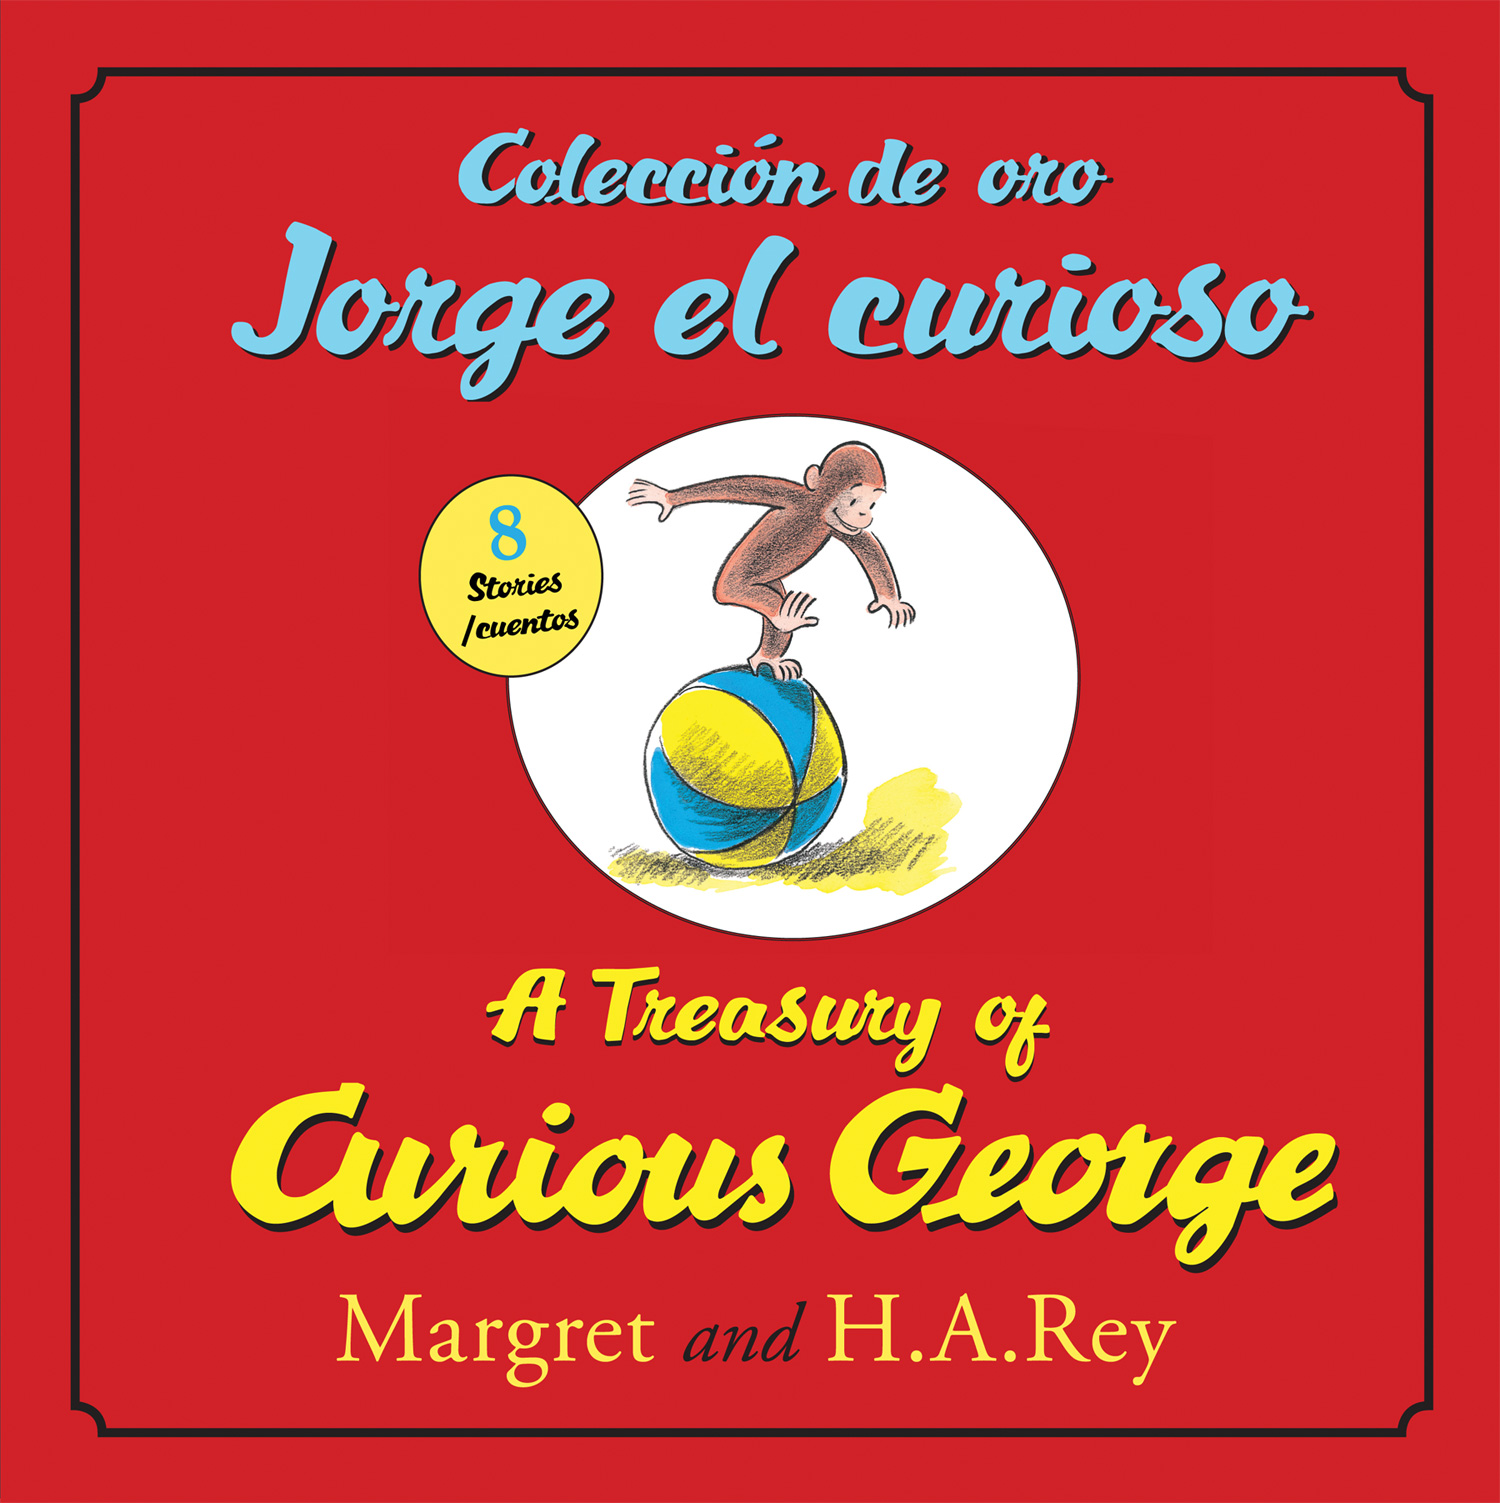 Coleccion de oro Jorge el curioso/A Treasury of Curious George (bilingual edition)-9780547523101